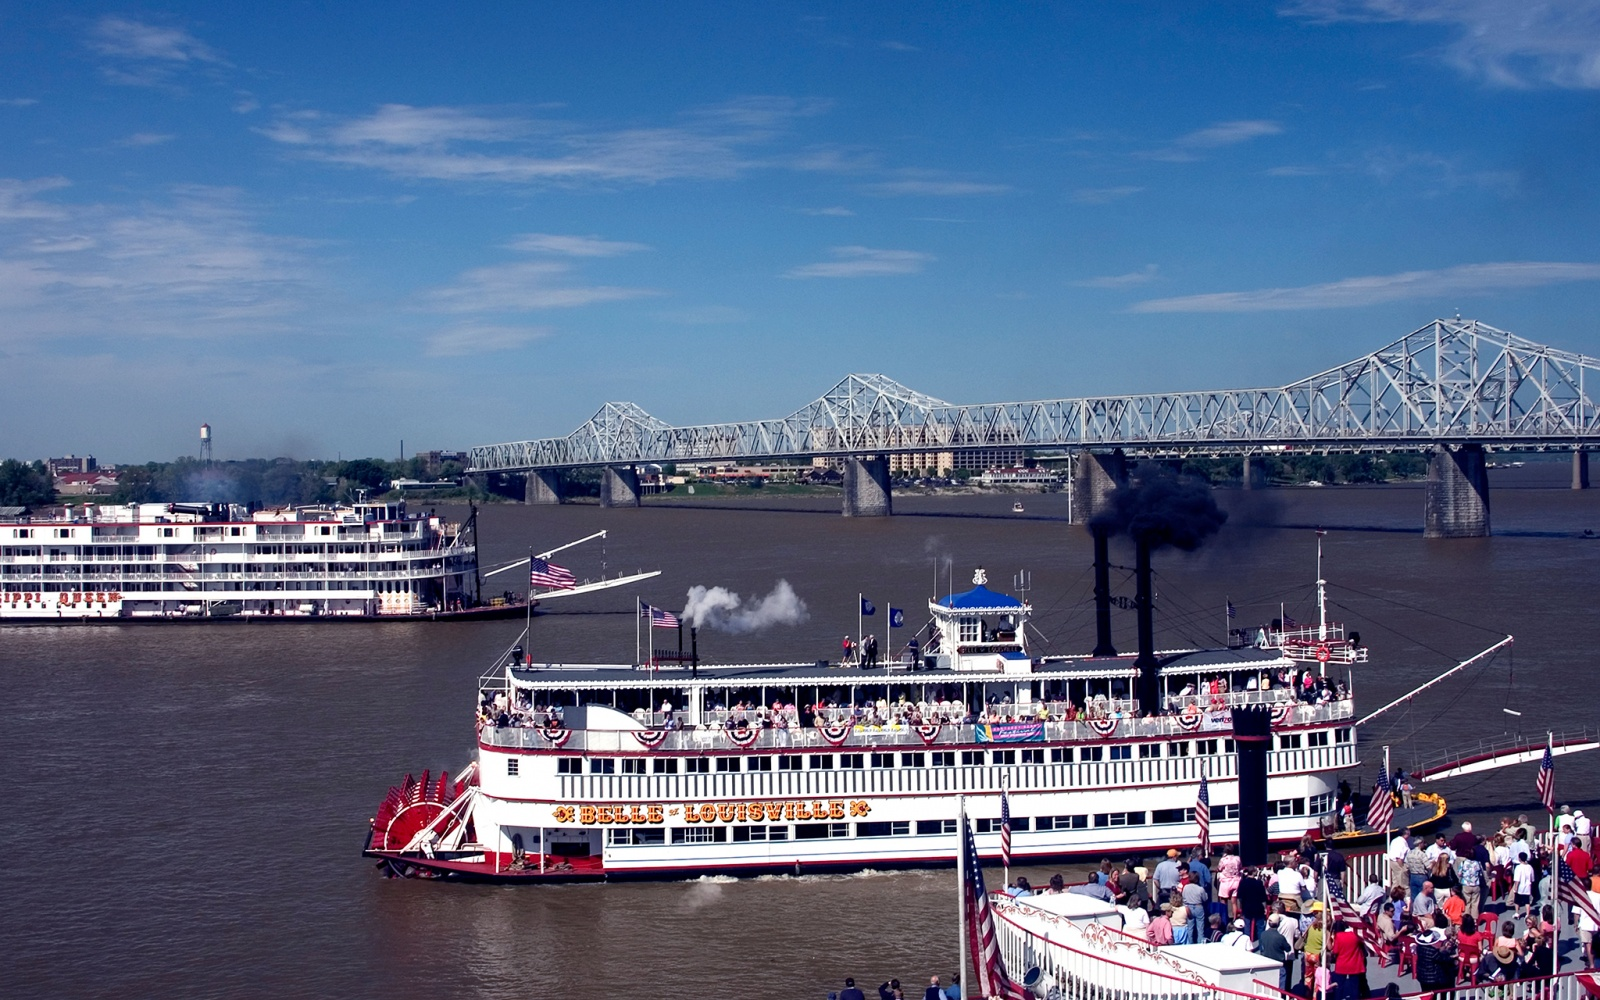 old riverboats in Louisville, KY